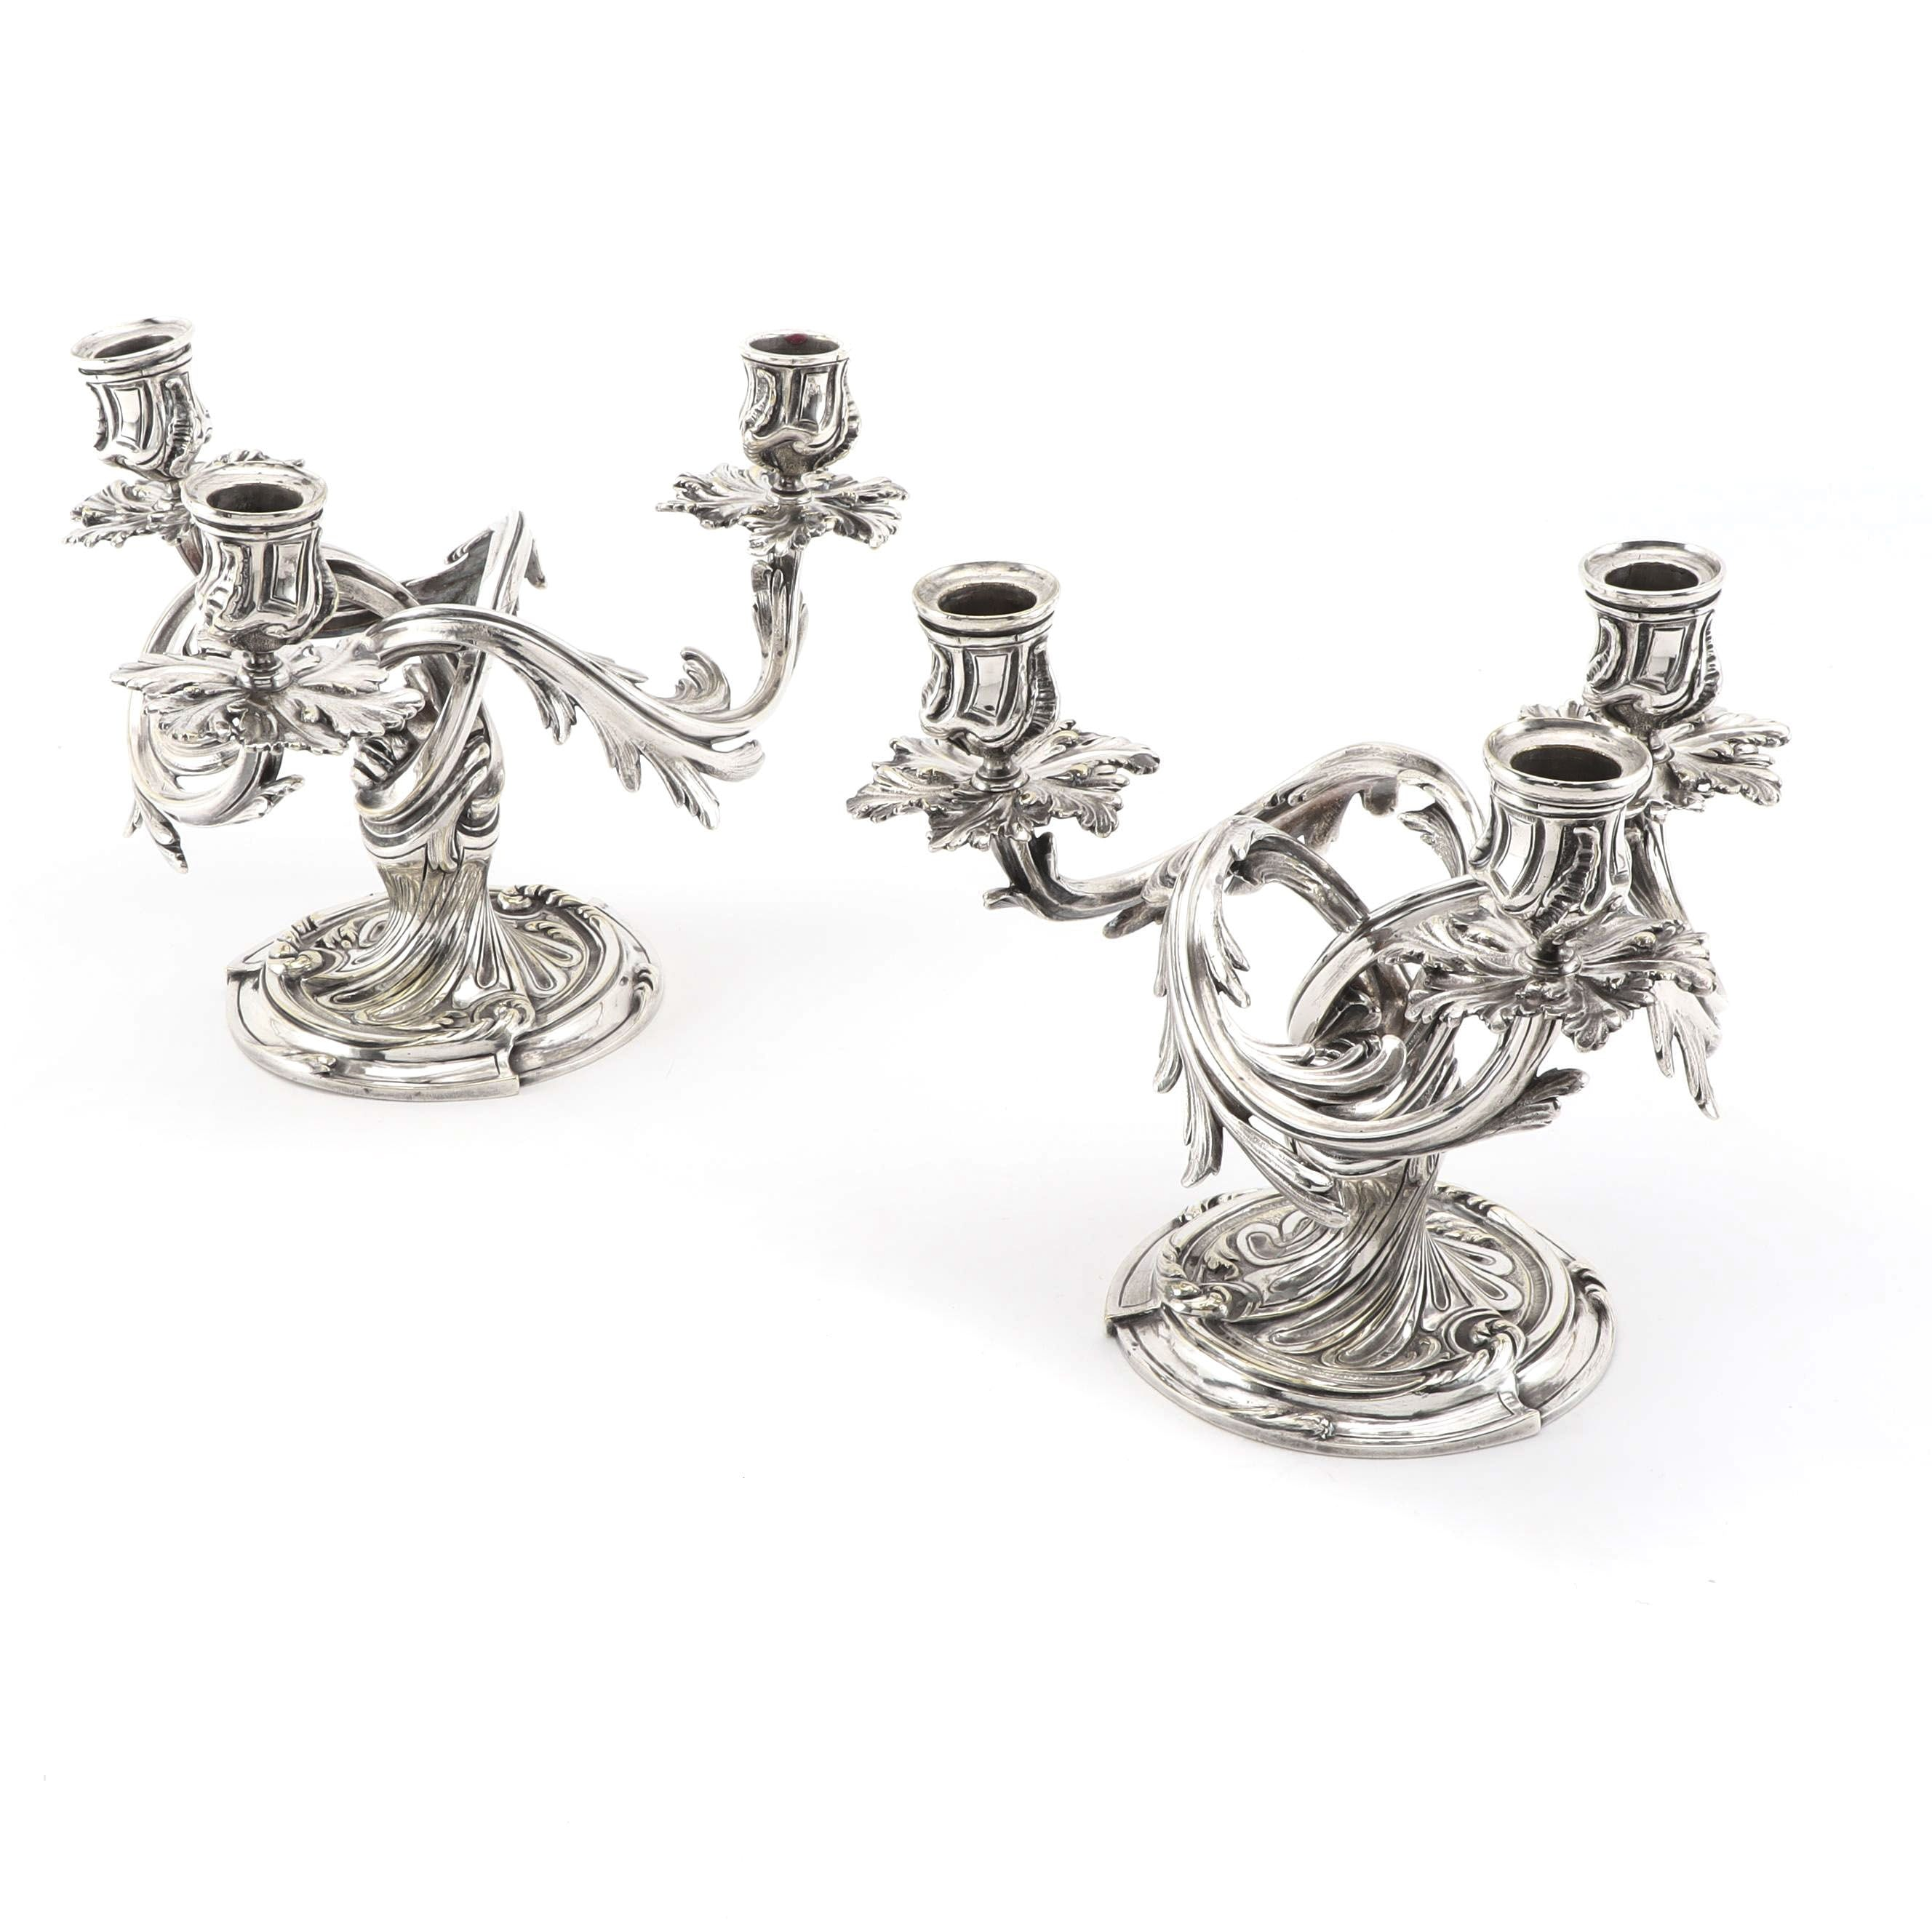 "Christofle France ""Trianon"" Silver Plate Candelabra Pair, Early 20th C."